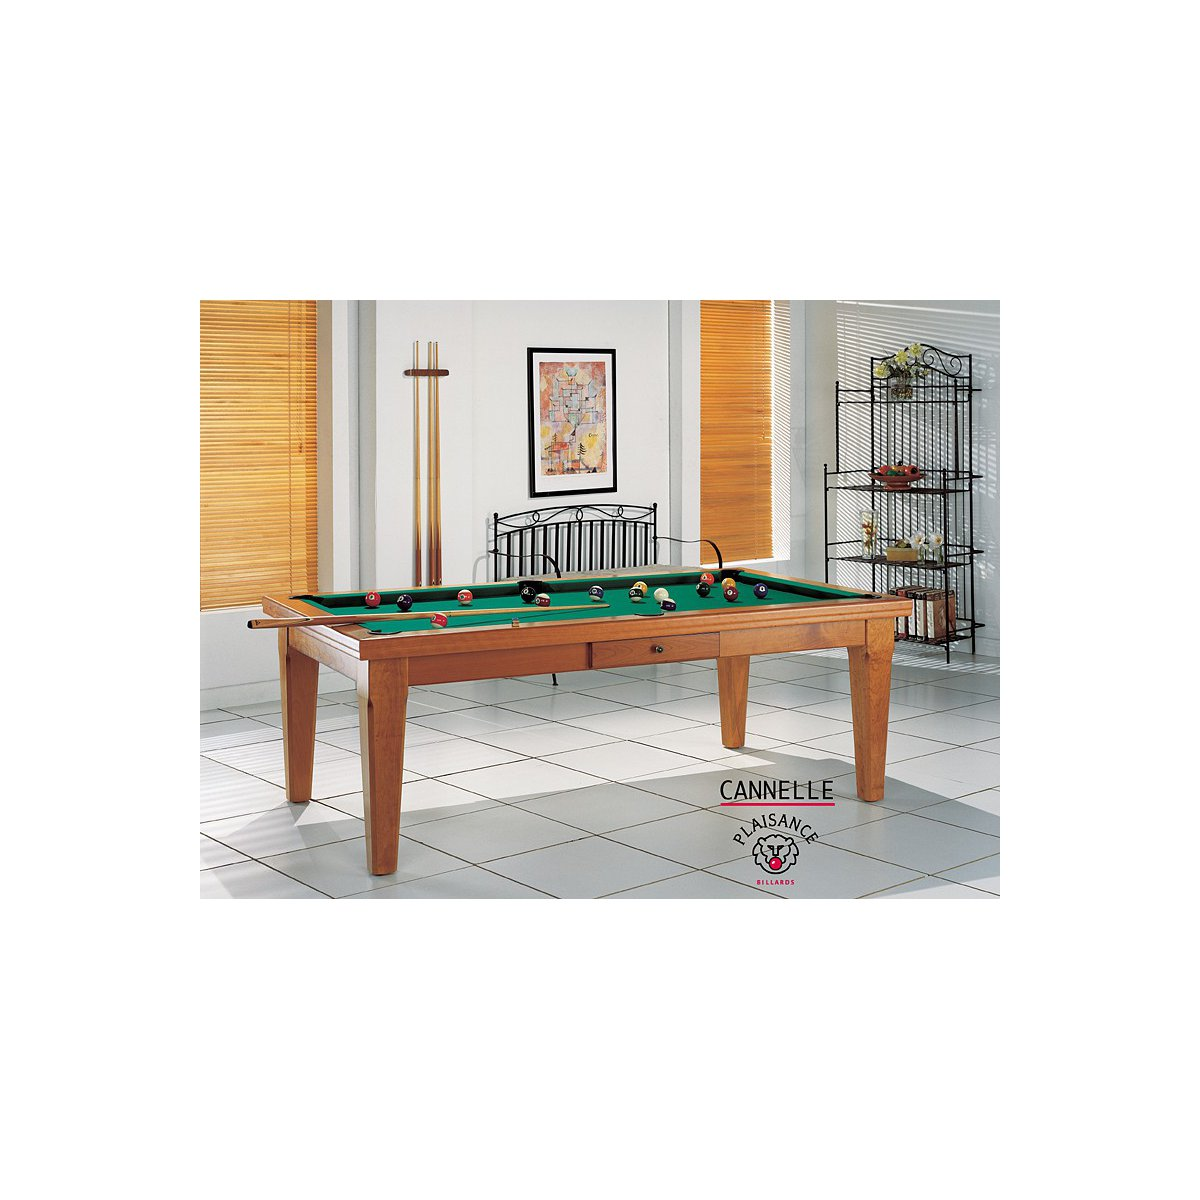 fabulous table billard convertible cannelle with table. Black Bedroom Furniture Sets. Home Design Ideas